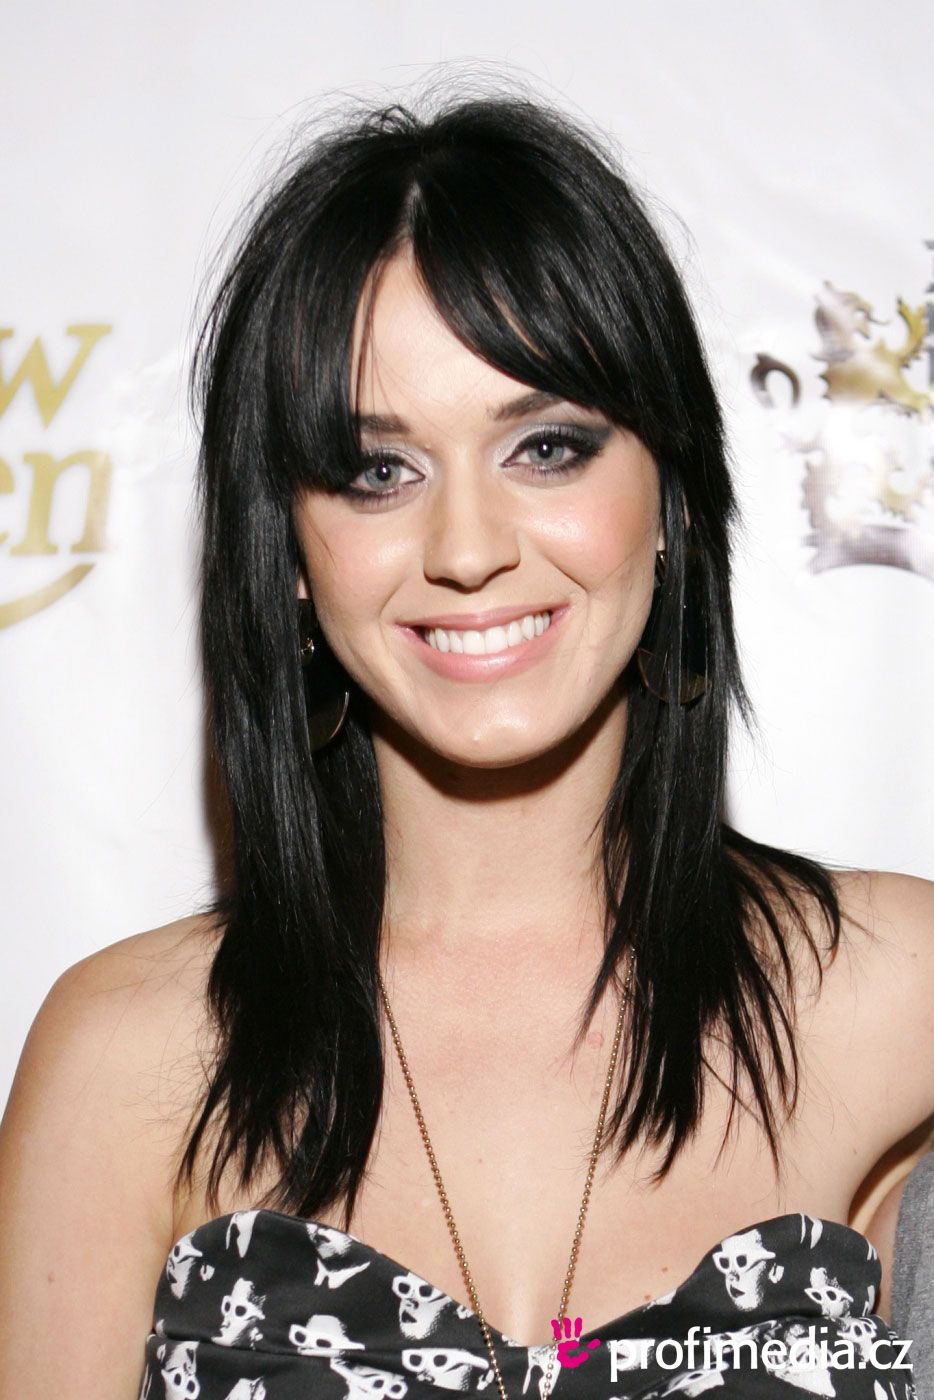 Discussion on this topic: Katy Perry Black Sleek Long Straight Hairstyle, katy-perry-black-sleek-long-straight-hairstyle/